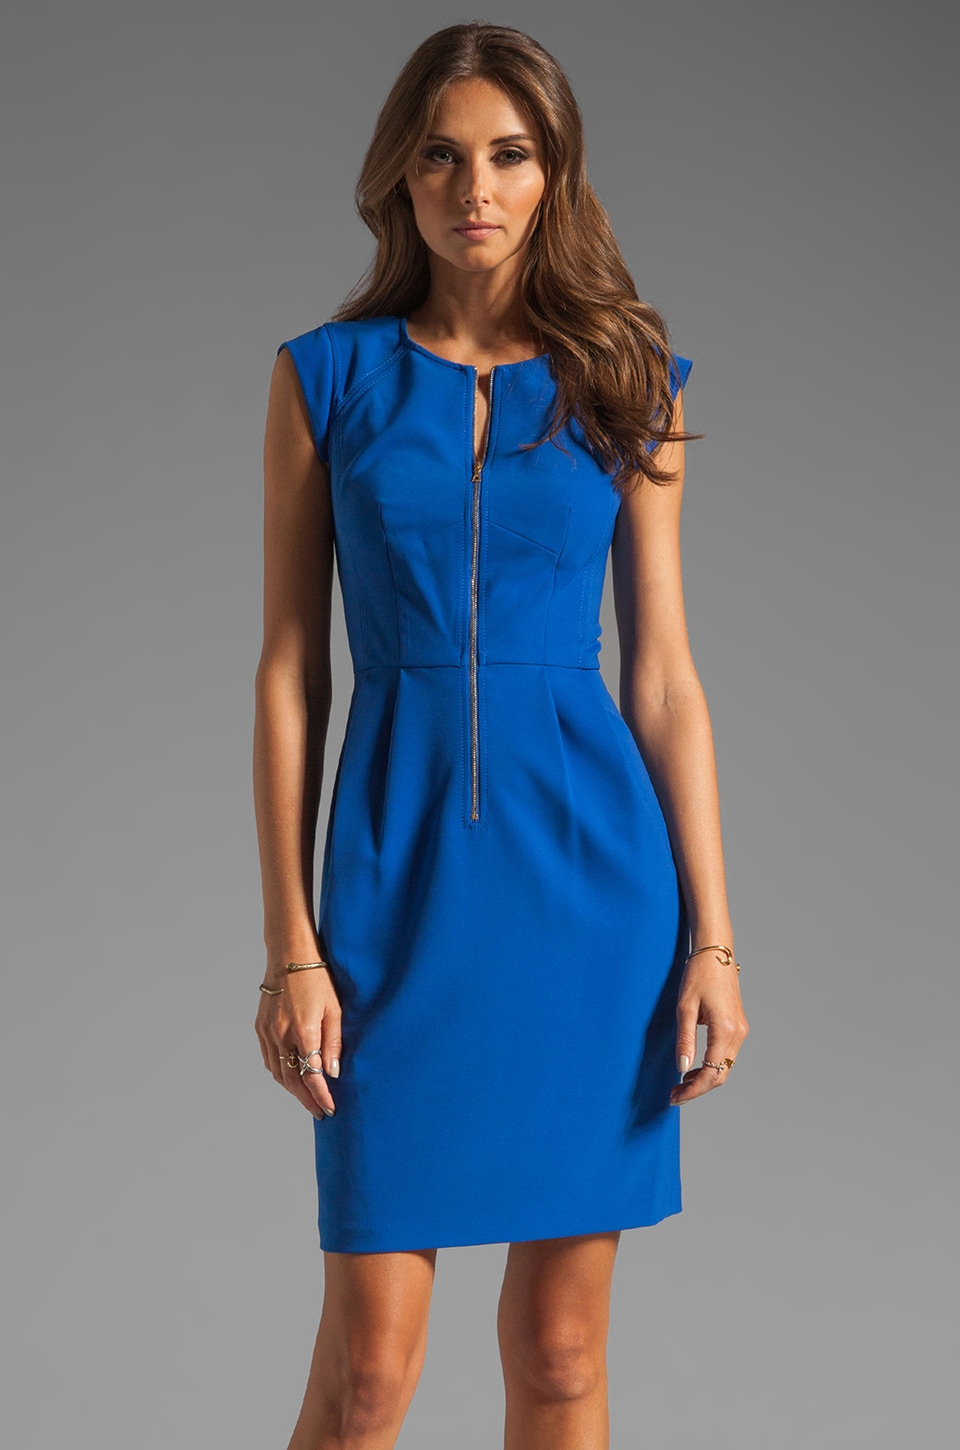 Rebecca Taylor Matte Crepe Short Sleeve Dress in Electric Blue